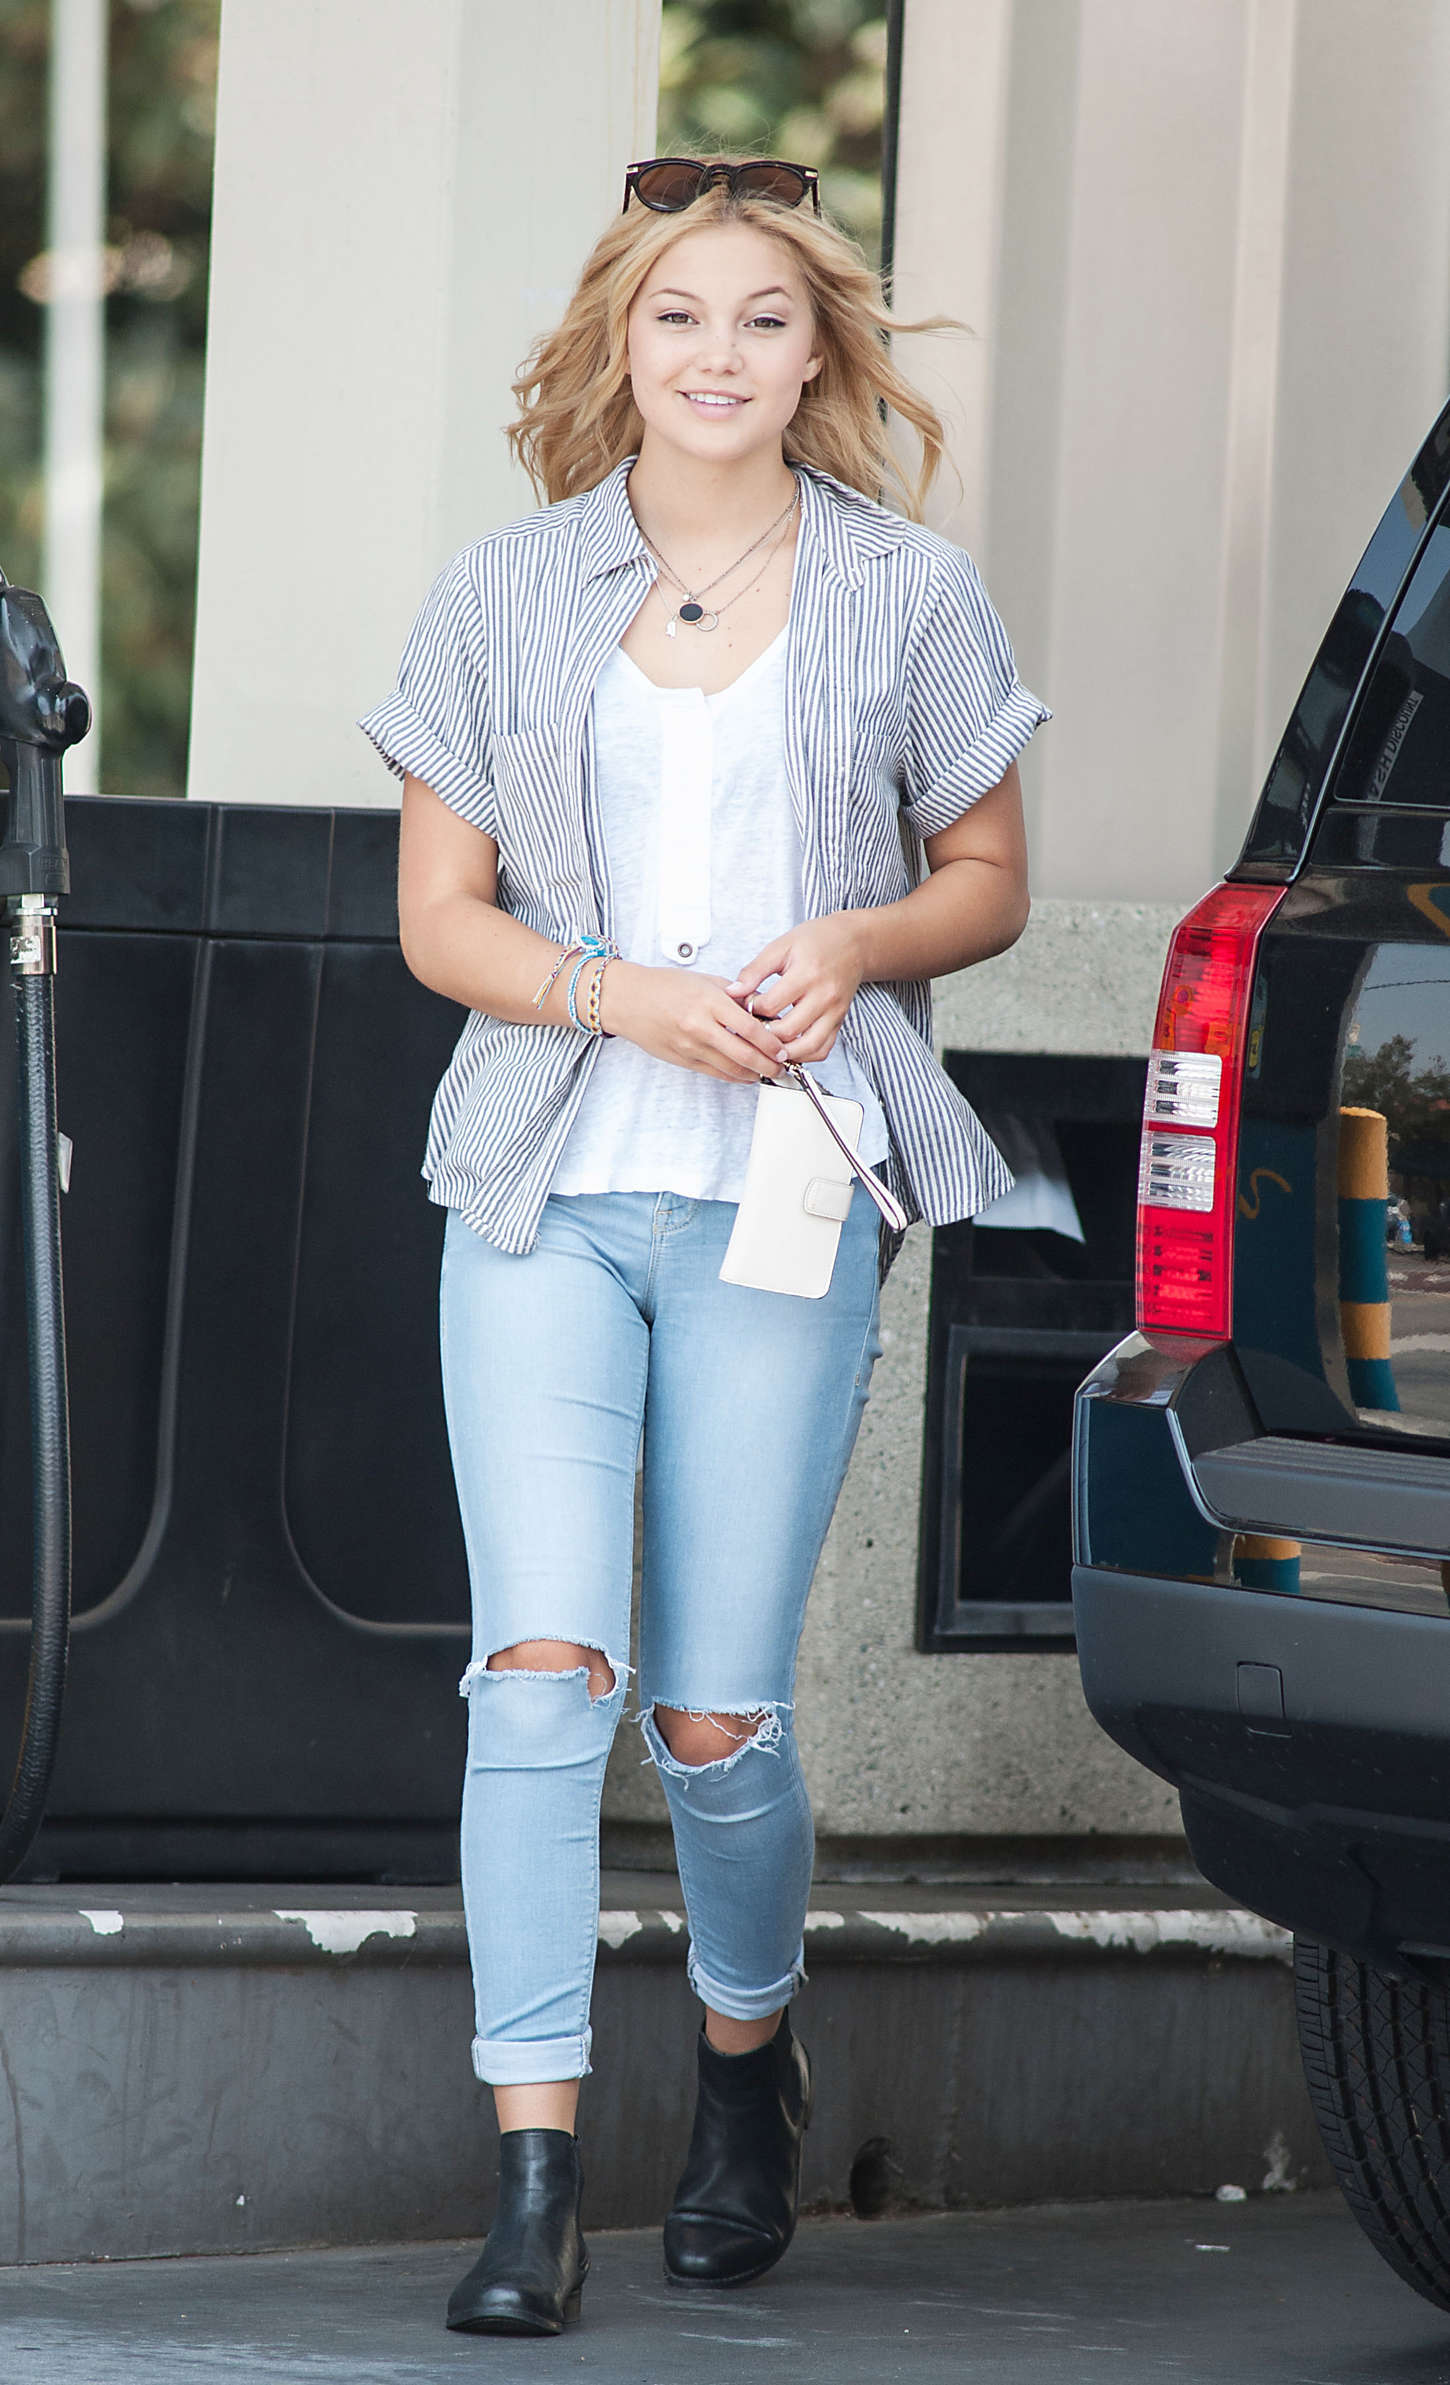 cameltoe olivia holt Olivia Holt in Tight Jeans -36 - Full Size